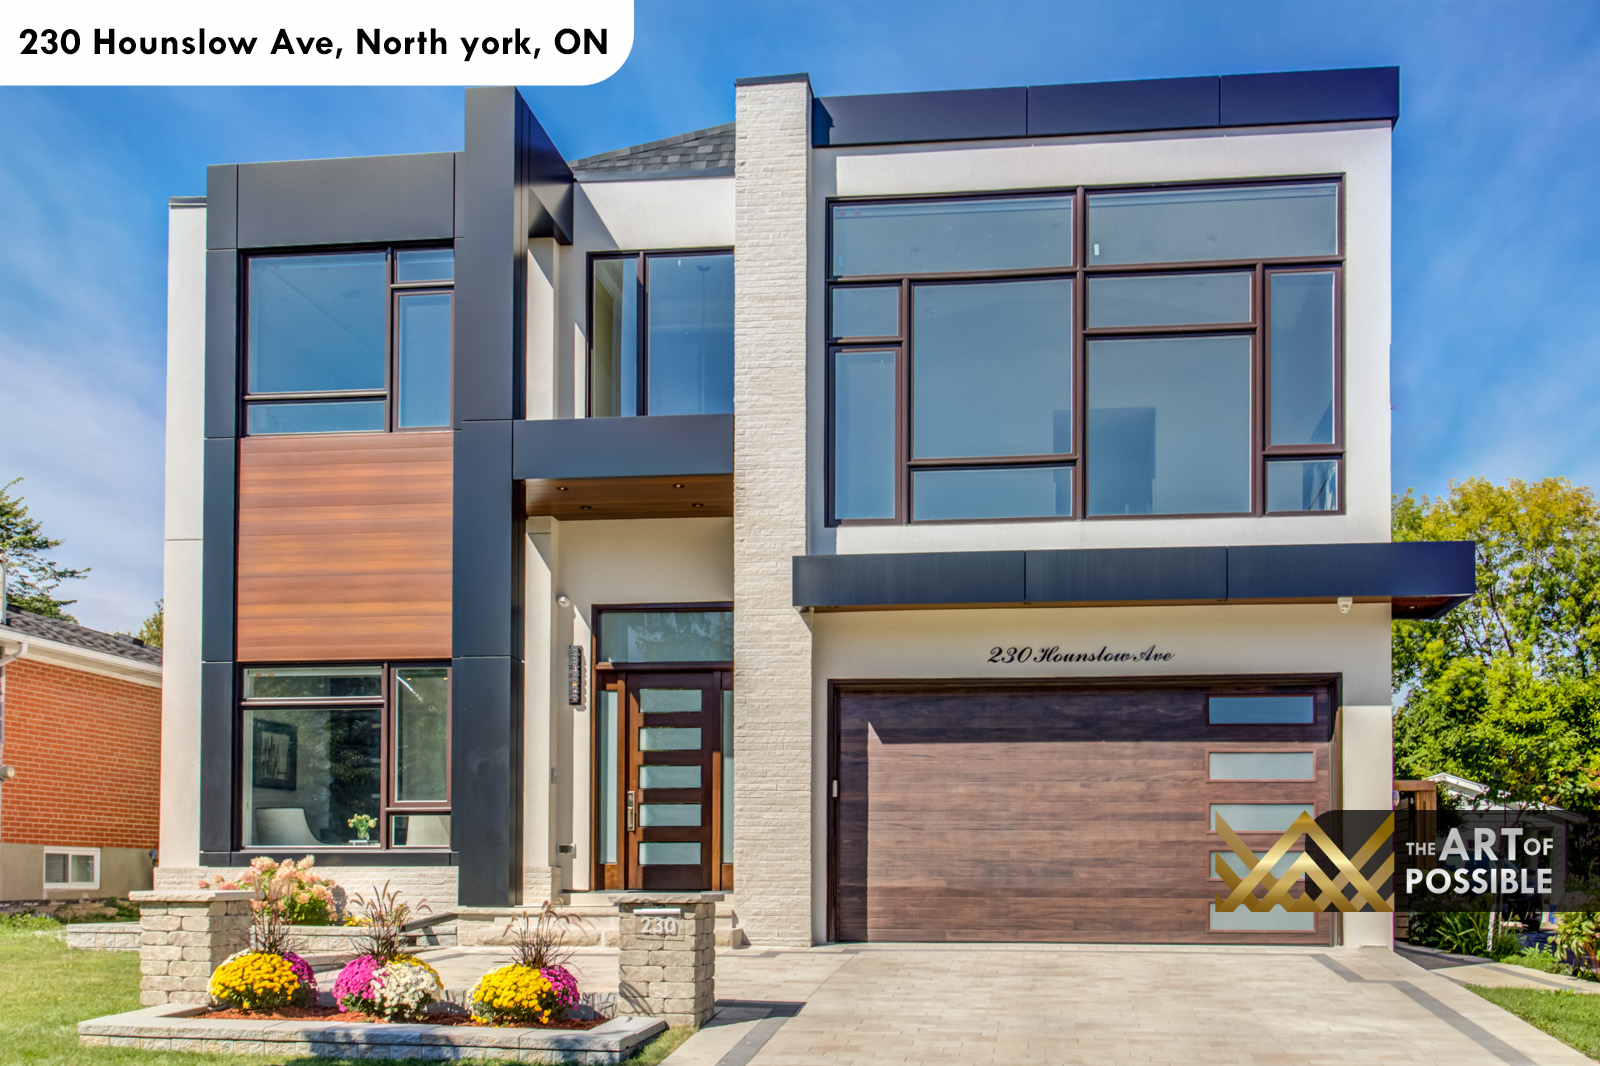 230 Hounslow Ave, North York